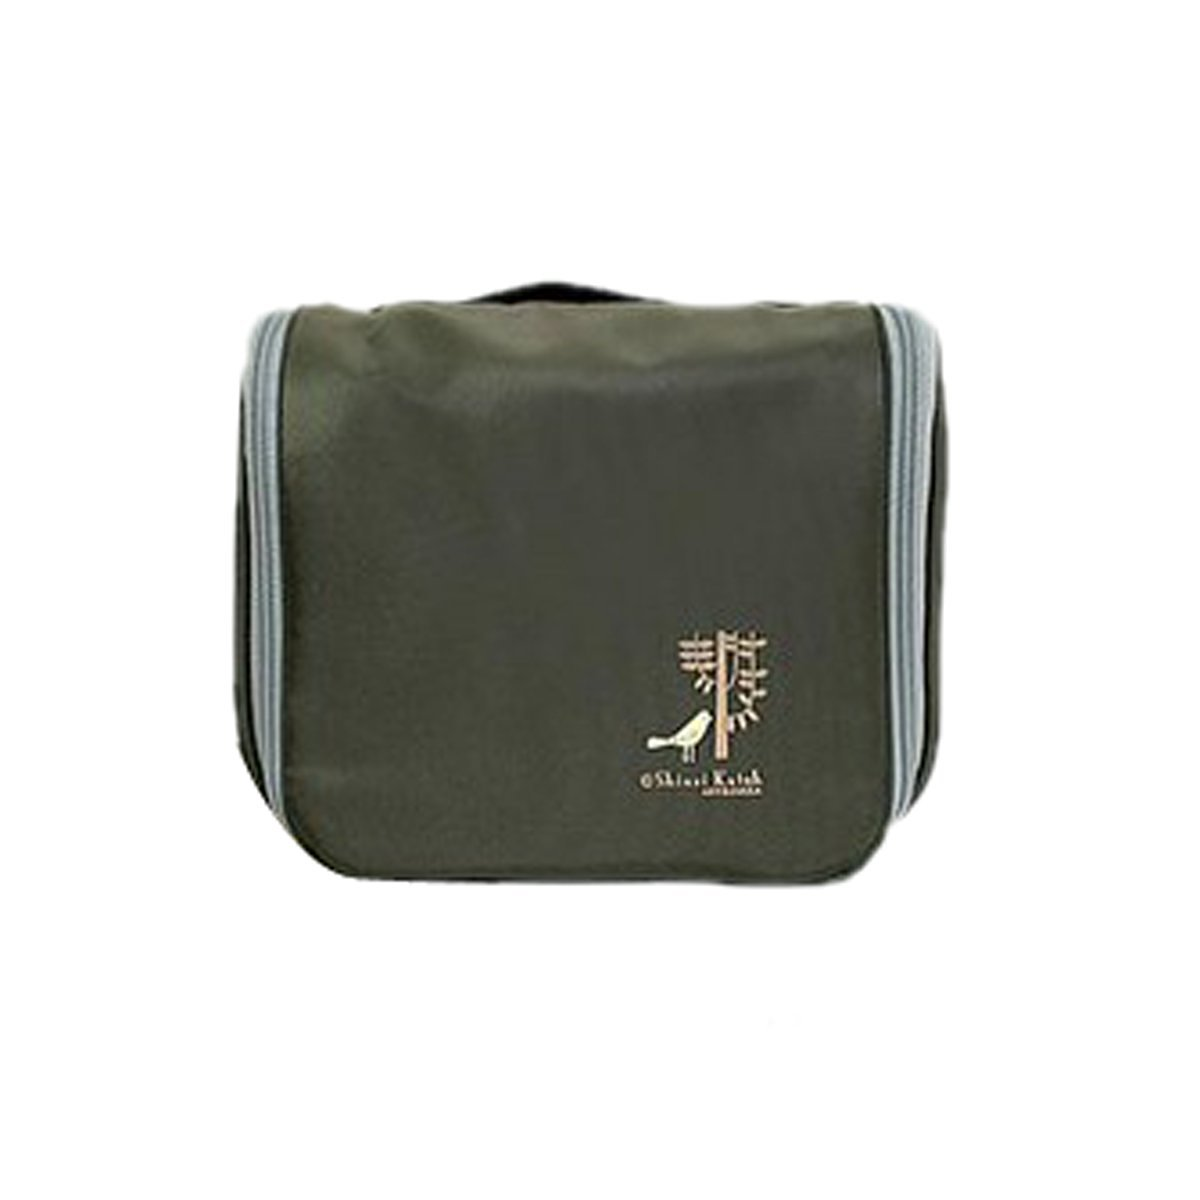 DEHANG Waterproof Nylon Ventilated Durable Portable Organiser Storage Bag With Handle for Travel - Blackish Green